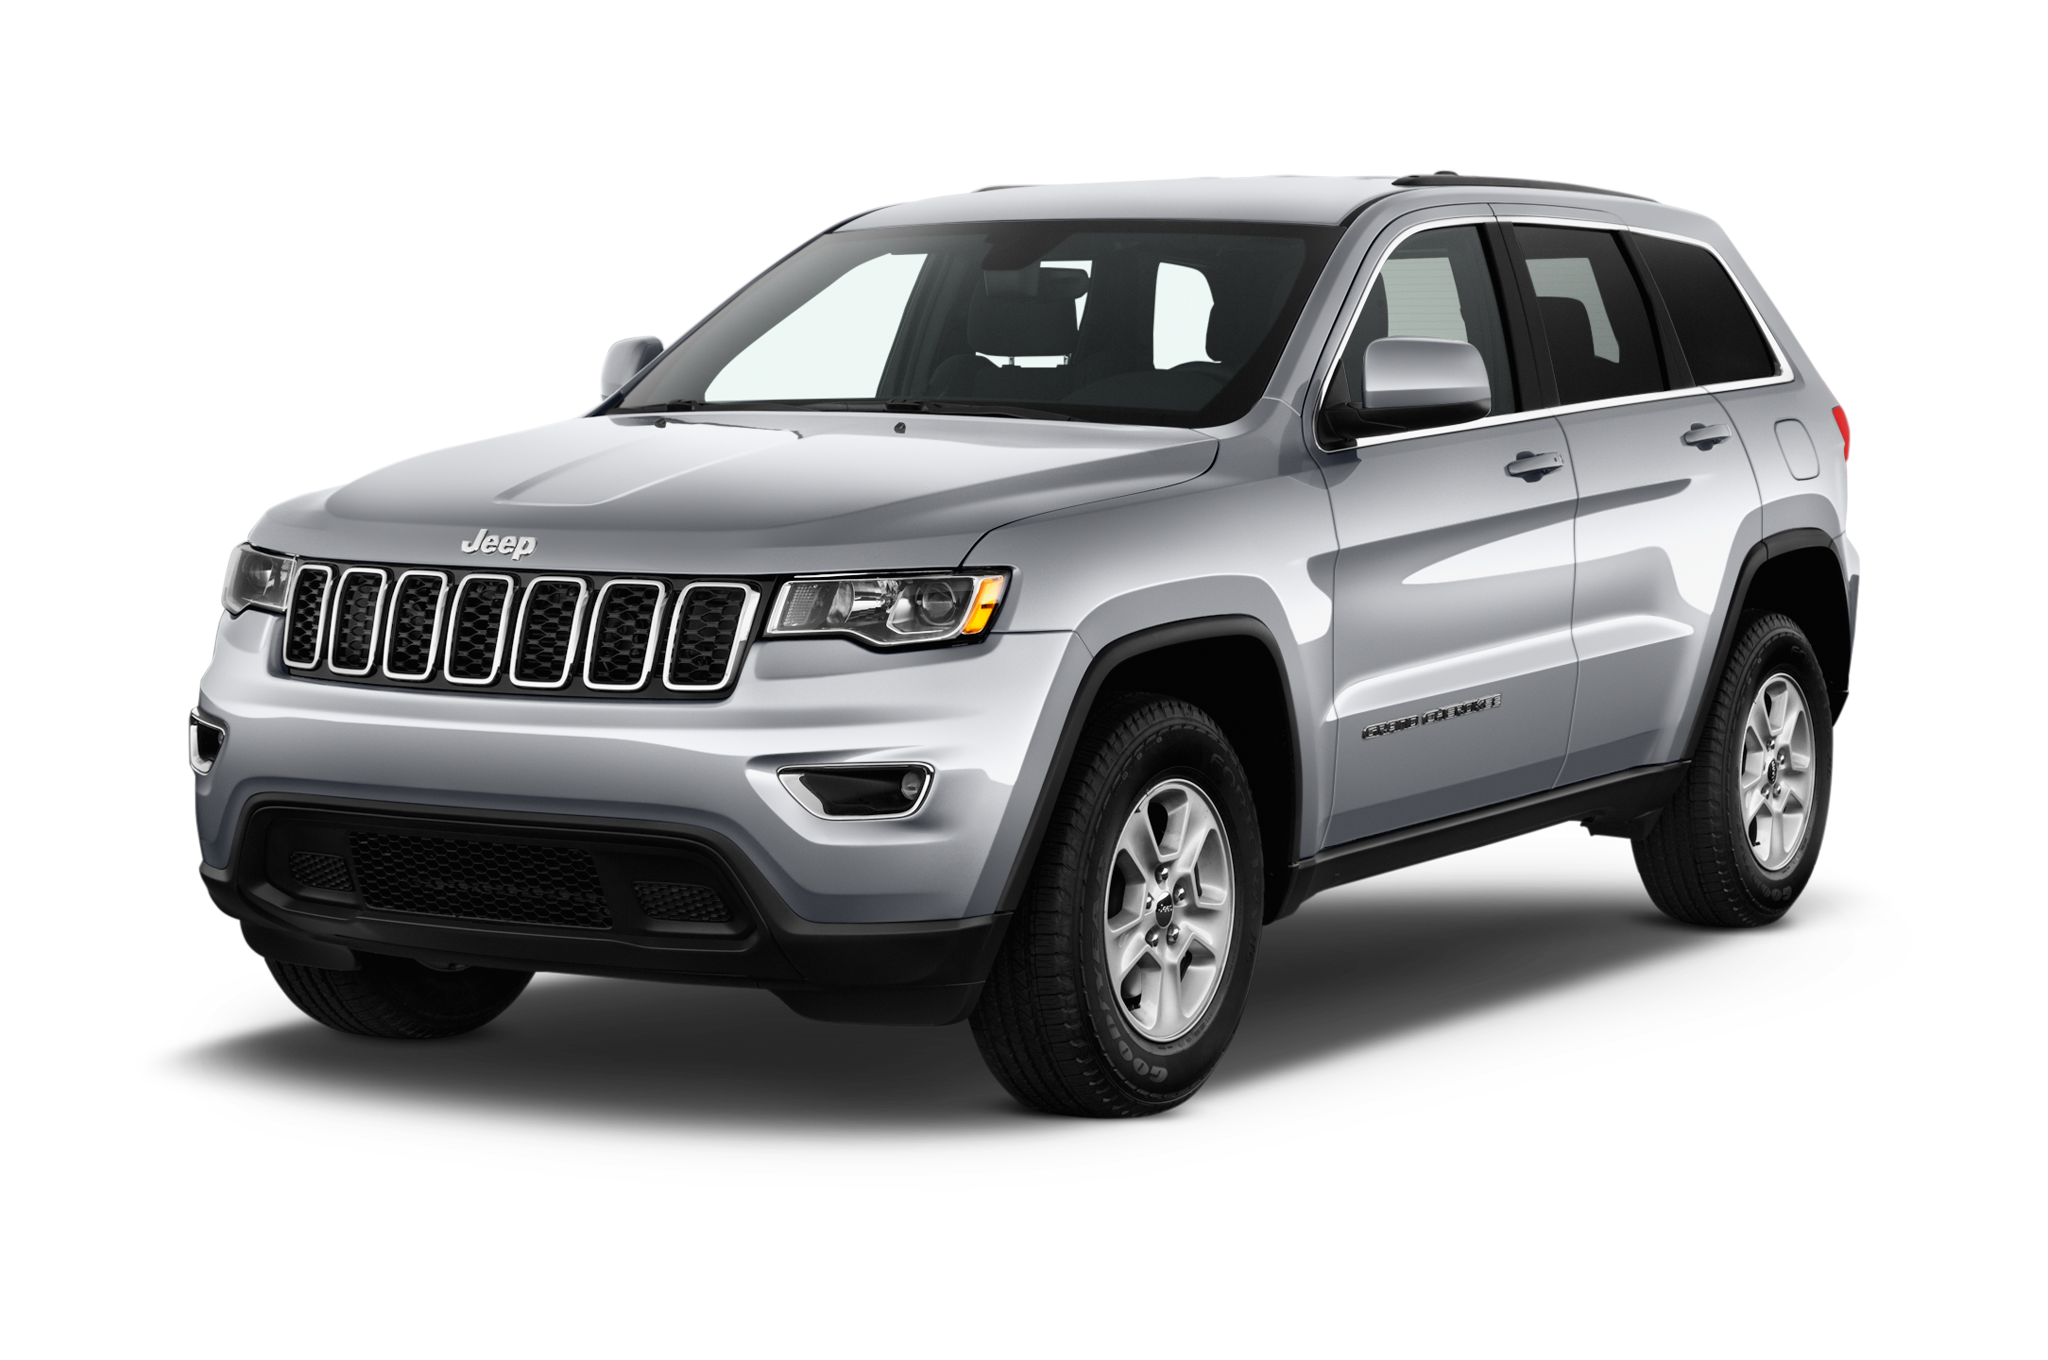 2017 Jeep Grand Cherokee Reviews.